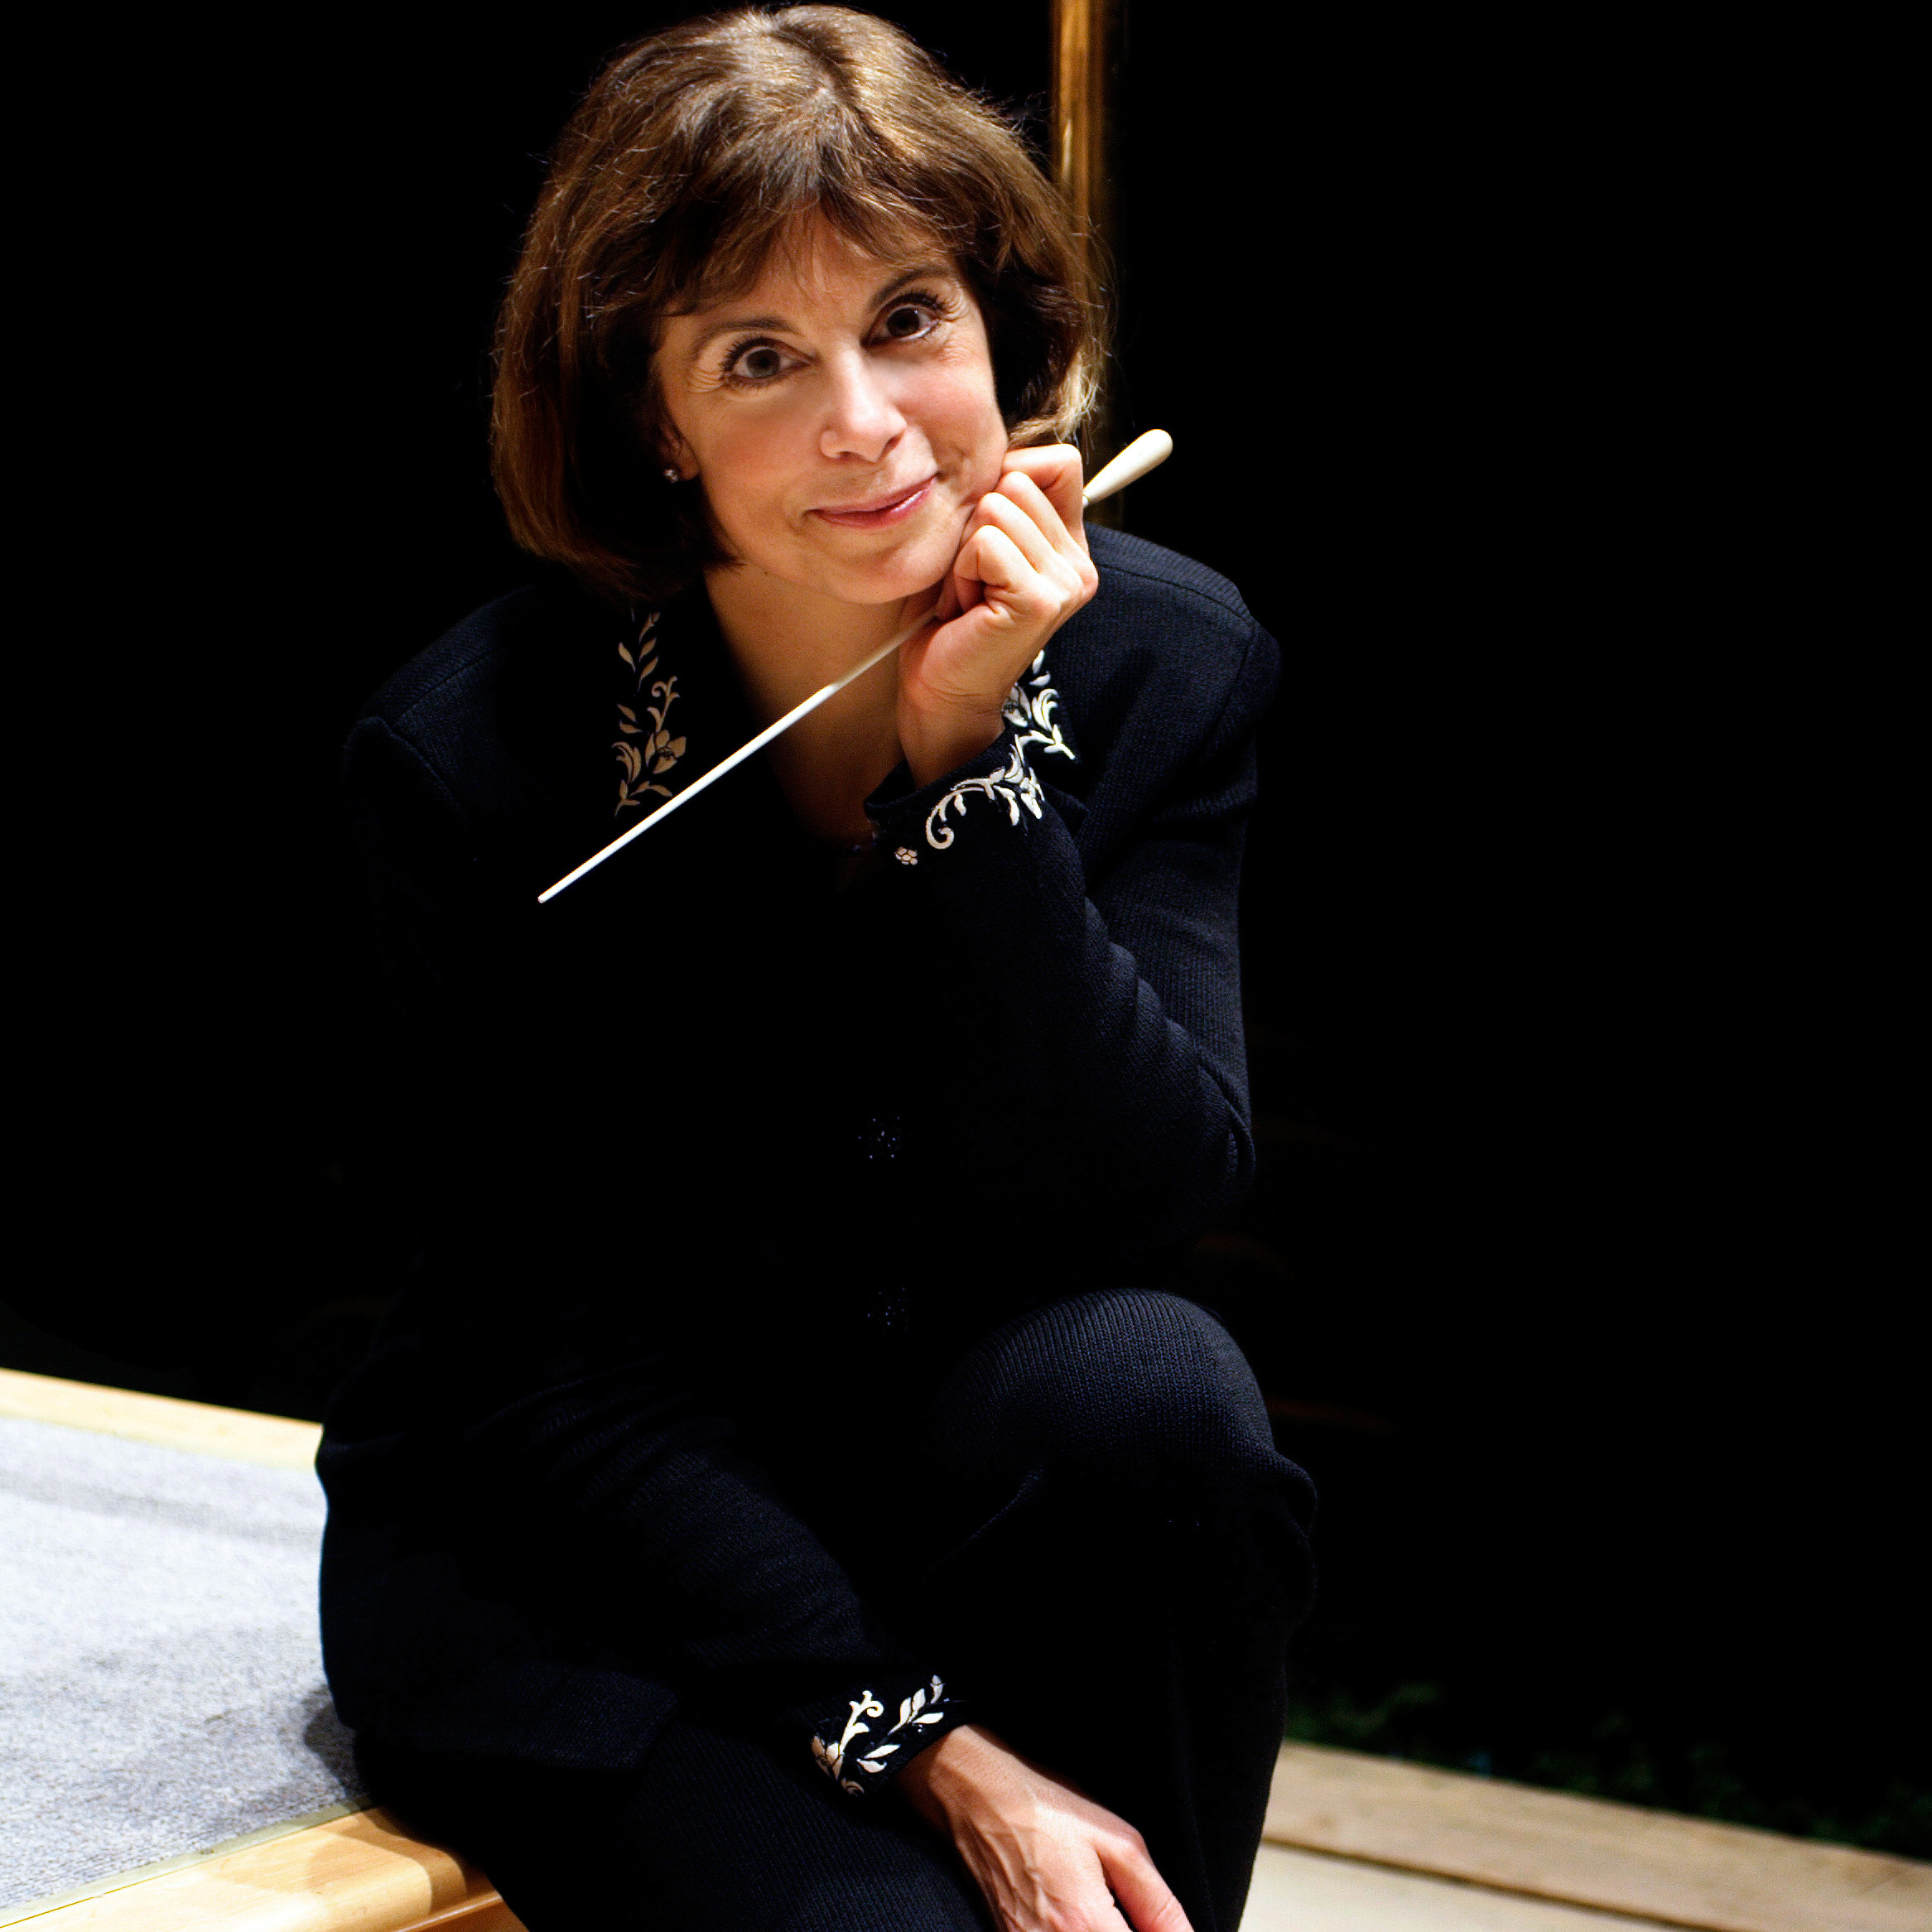 Conductor JoAnn Falletta asks: What makes an American symphony American?